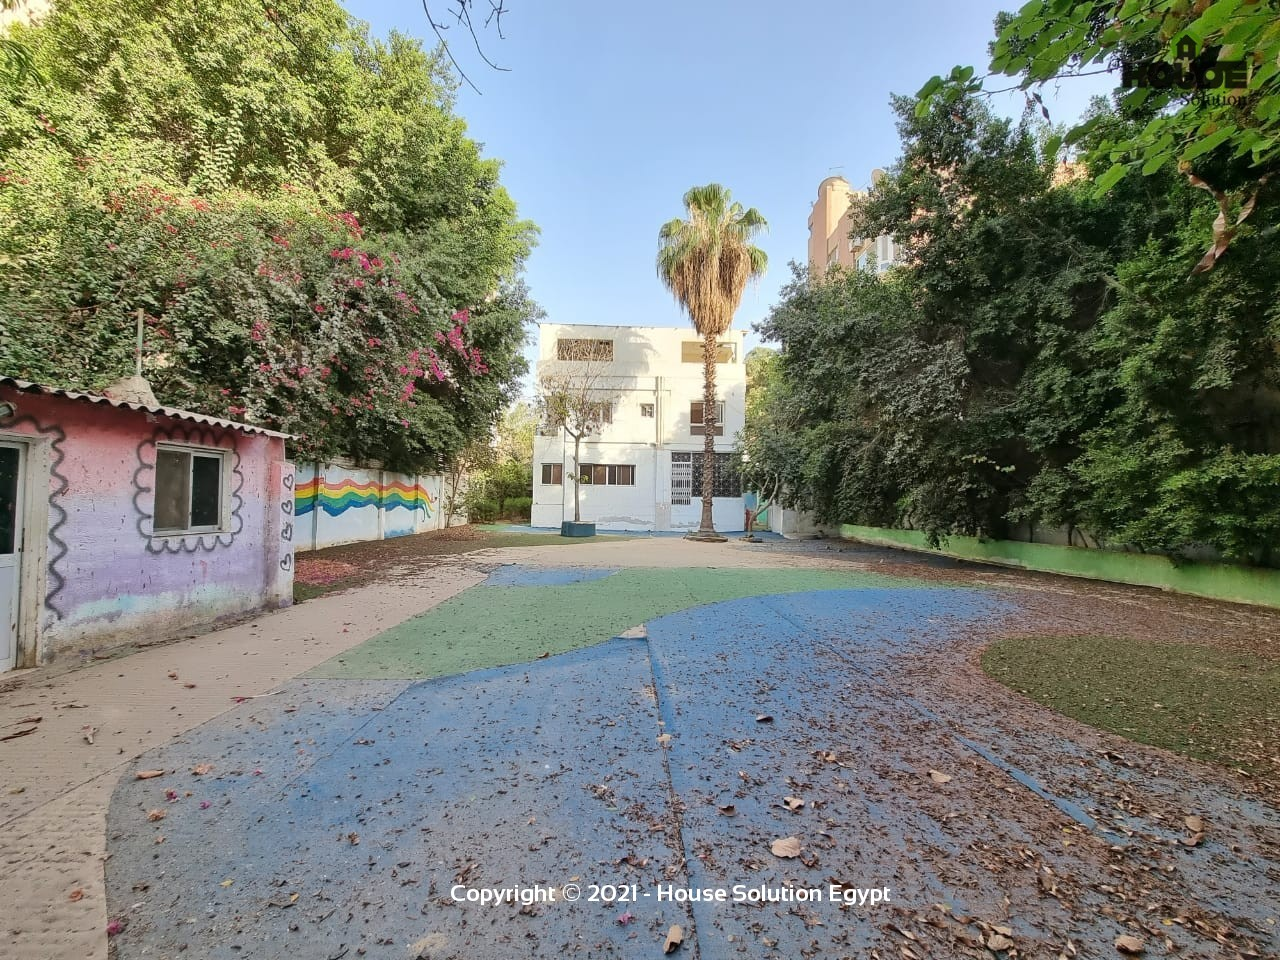 Office Space Villa For Rent Located In Sarayat El Maadi   - 5000 Featured Image